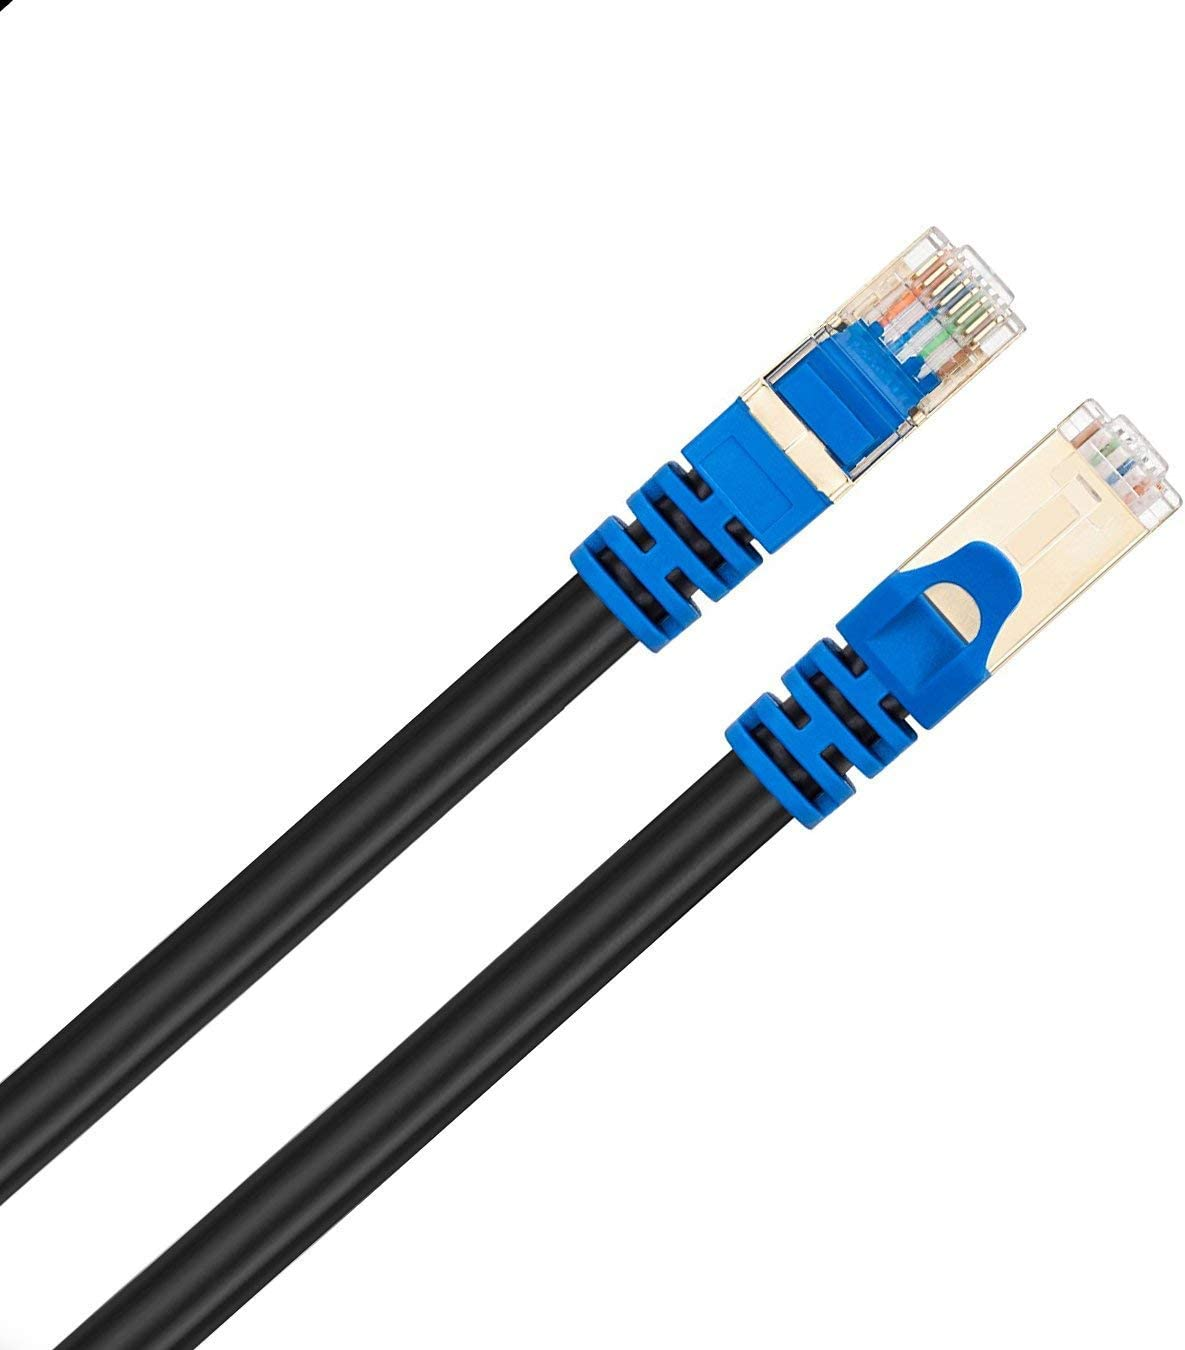 Router PS2 PS3 Laptop PC Xbox 360 Blue PS4 Outdoor Cat 7 Ethernet Cable 15Ft Mac Tanbin Cat7 RJ45 Network Patch Cable Heavy-Duty 10 Gigabit 600Mhz LAN Wire Cable Cord for Modem